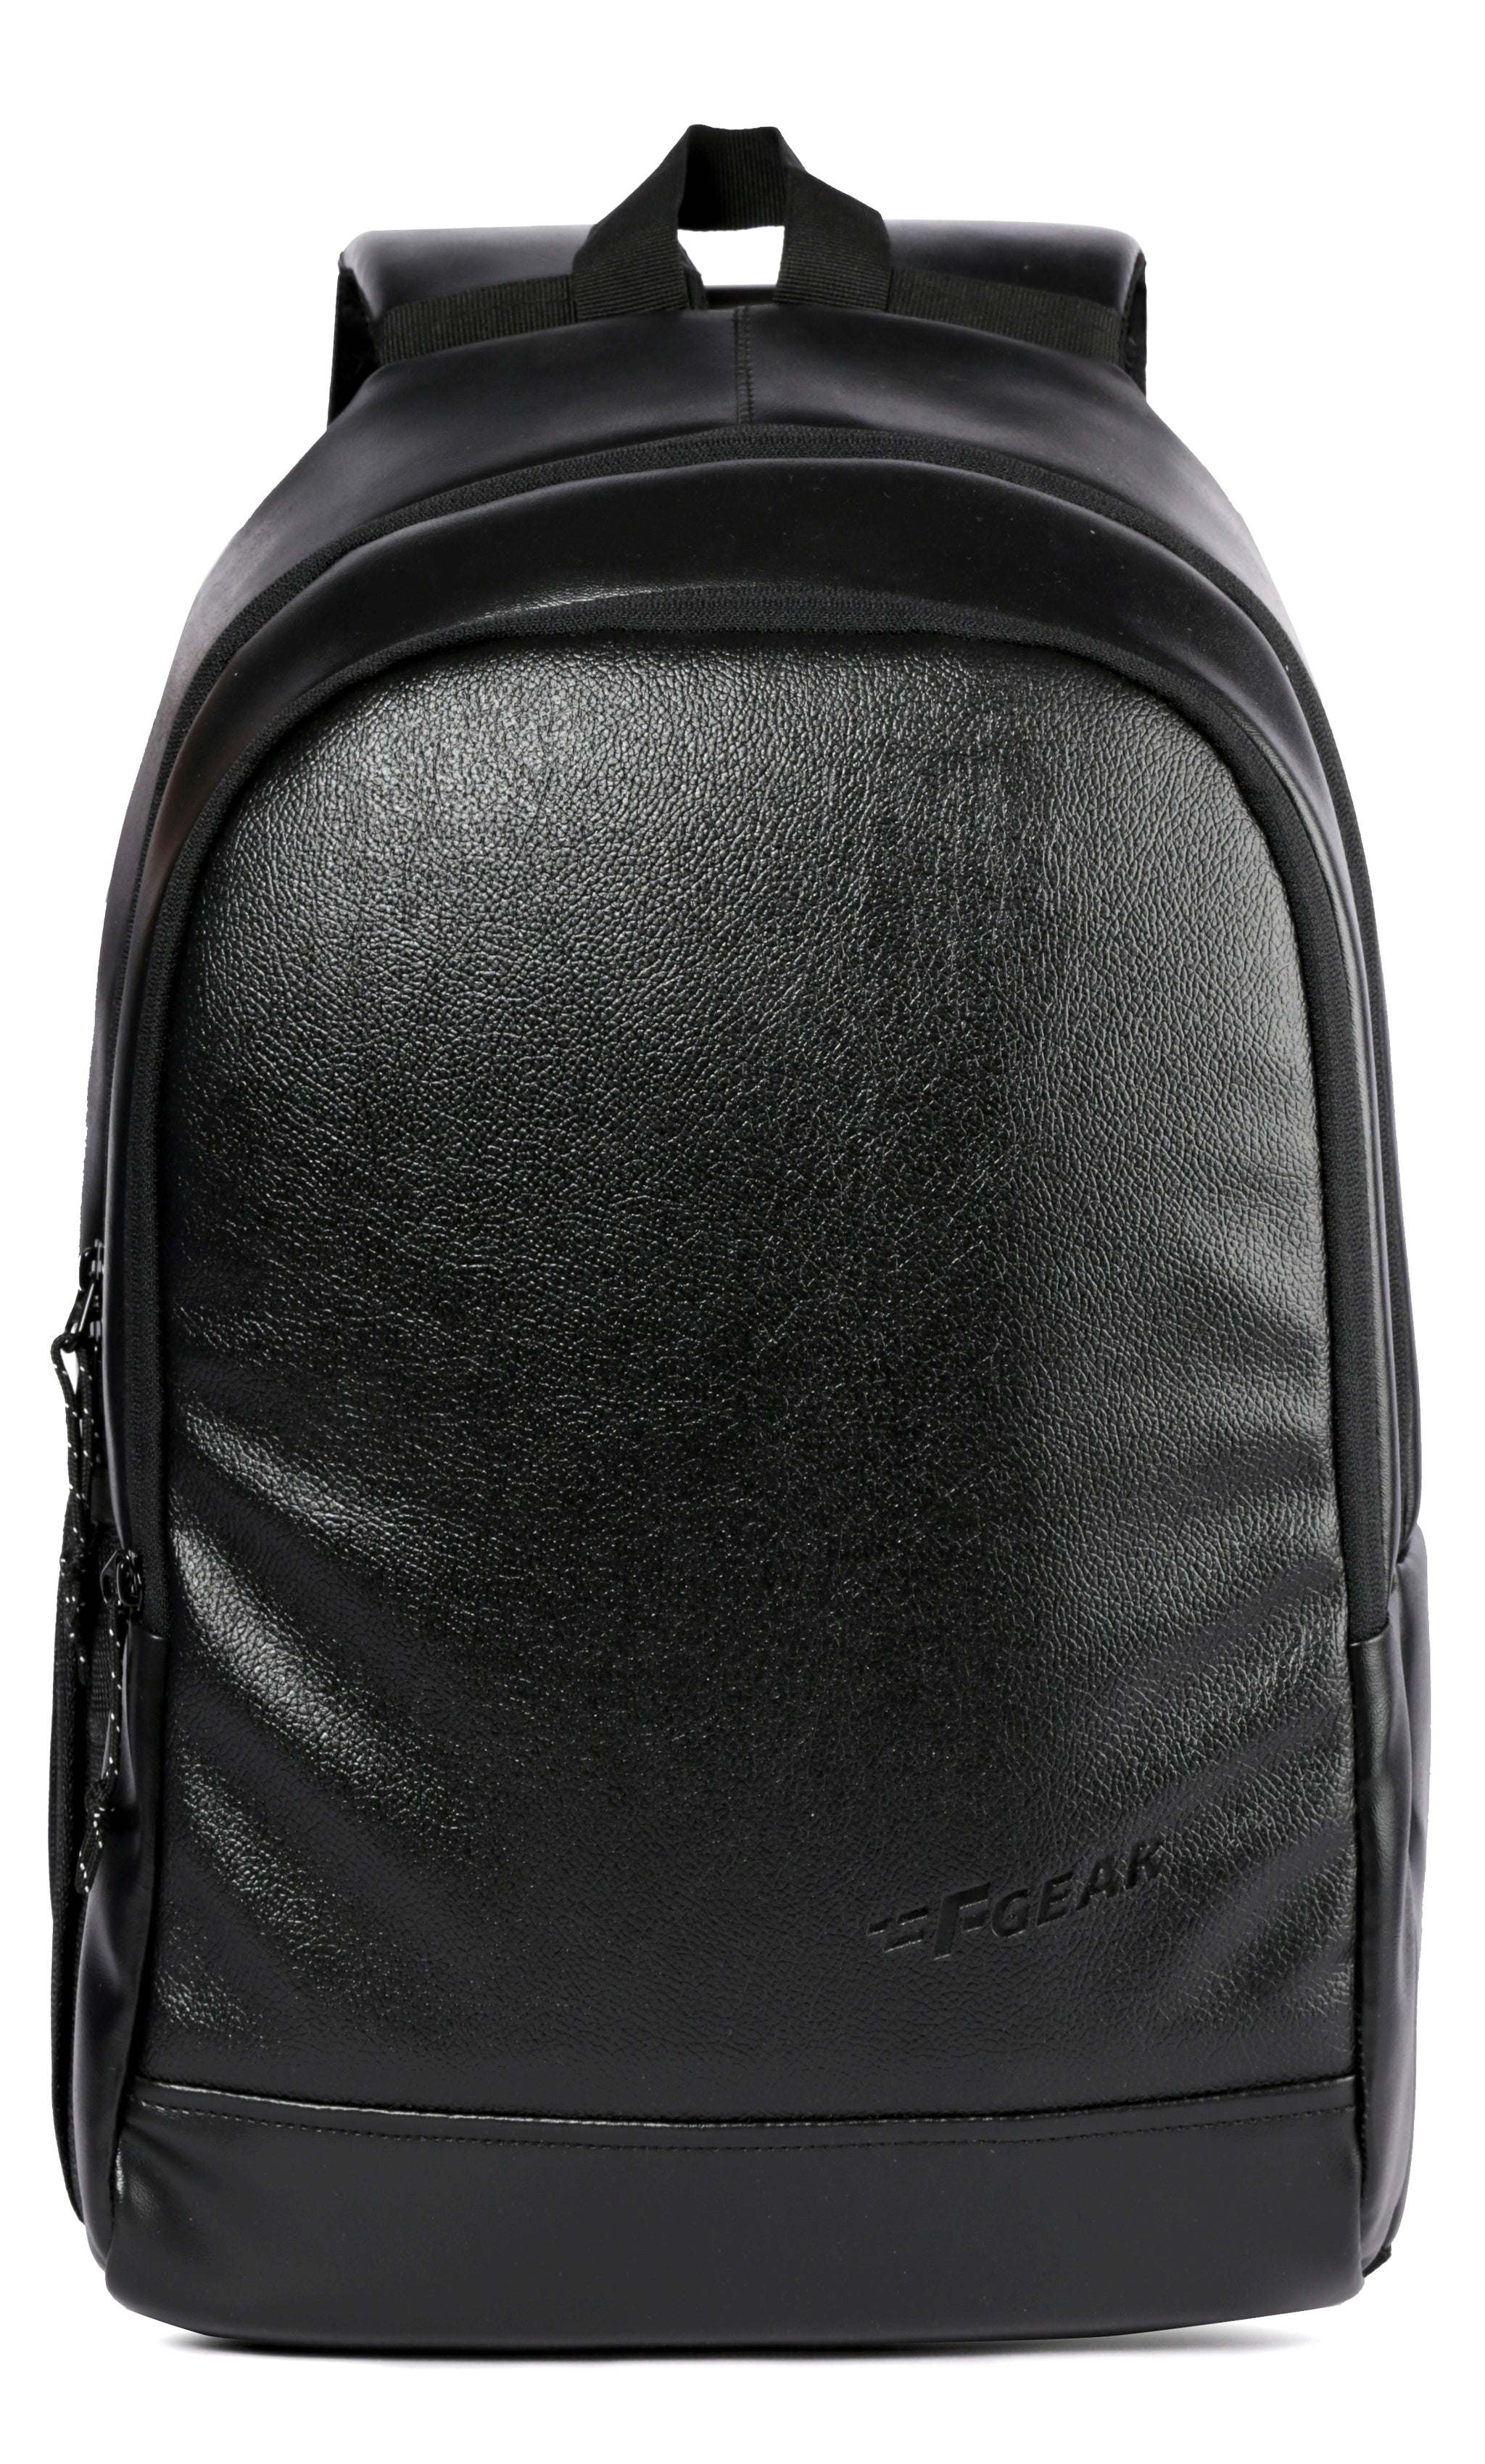 F Gear Castle Art 24 Liters Black Leather Backpack